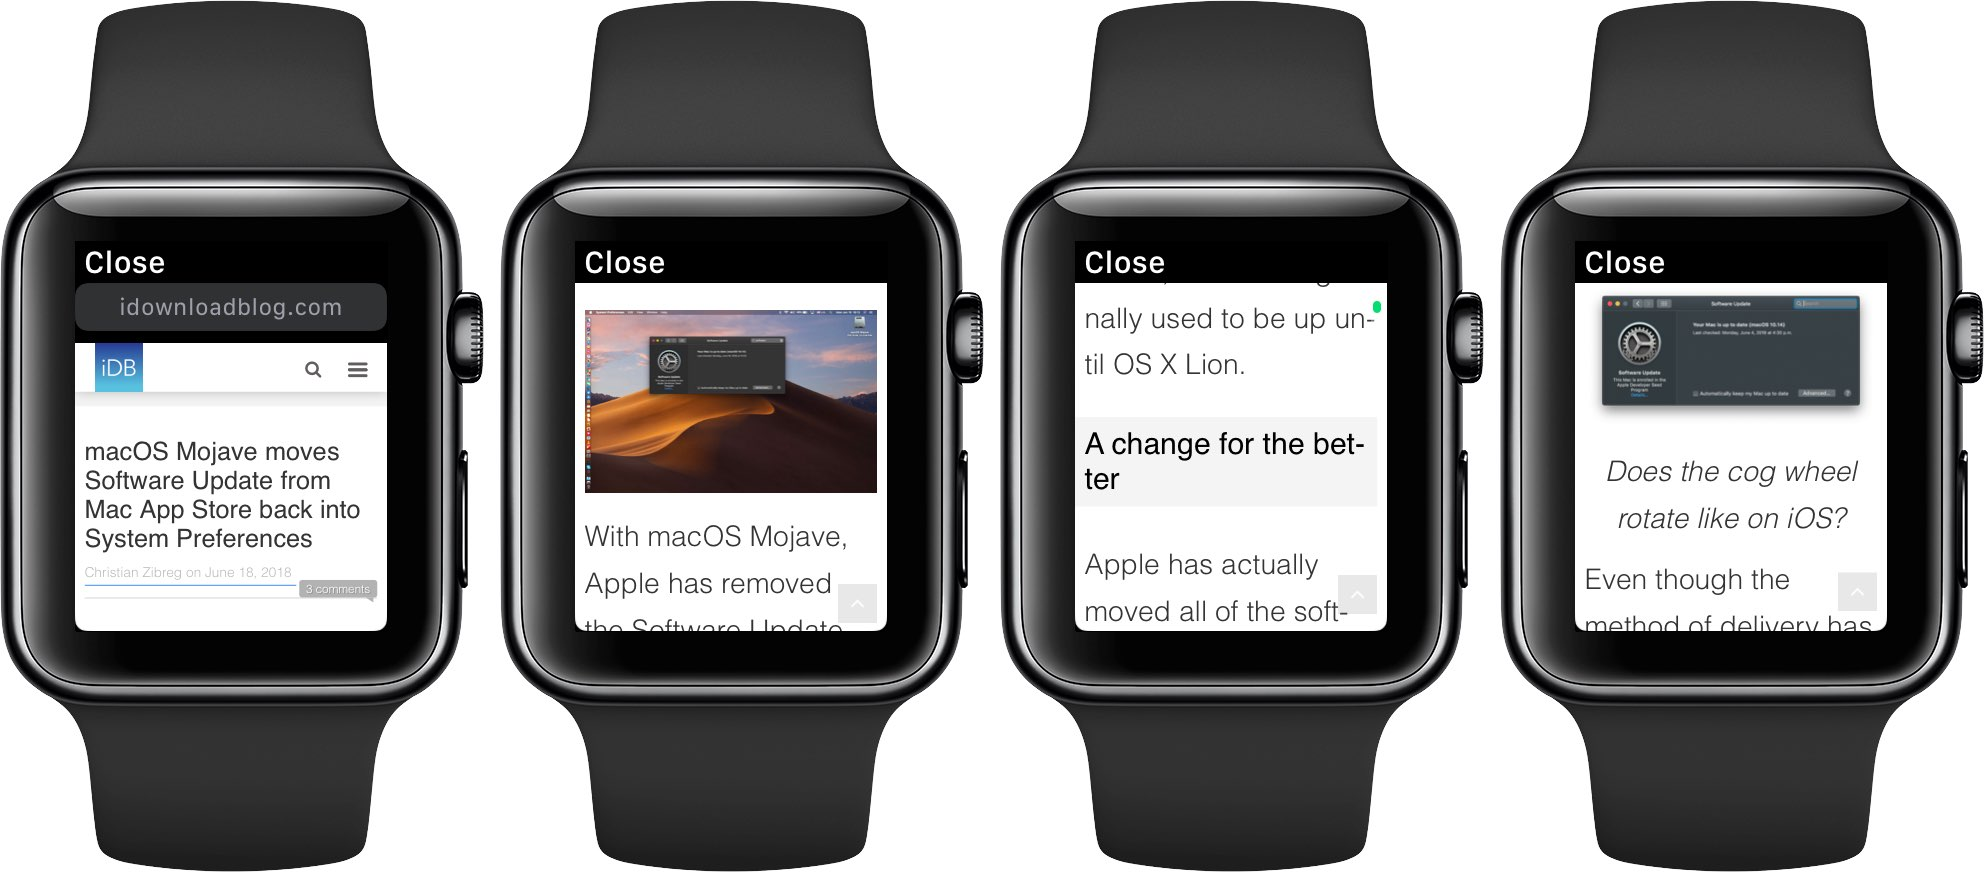 watchOS 5's WebKit engine renders the text and images, but not videos